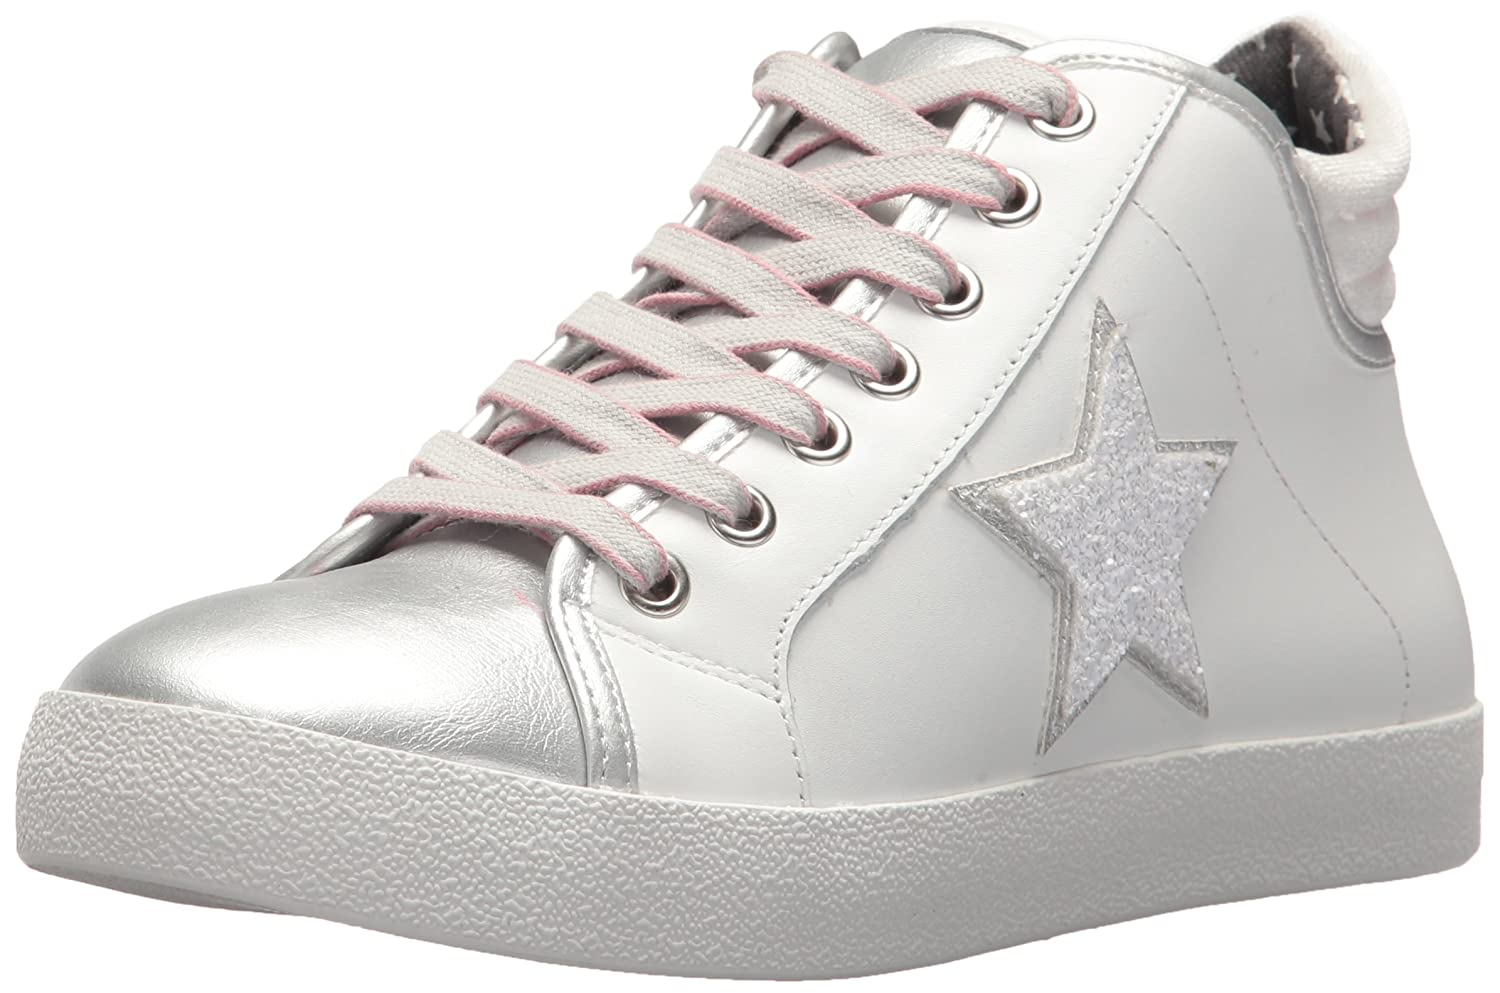 Steve Madden Women's Savior Sneaker B076TN54C9 9.5 B(M) US|White/Multi